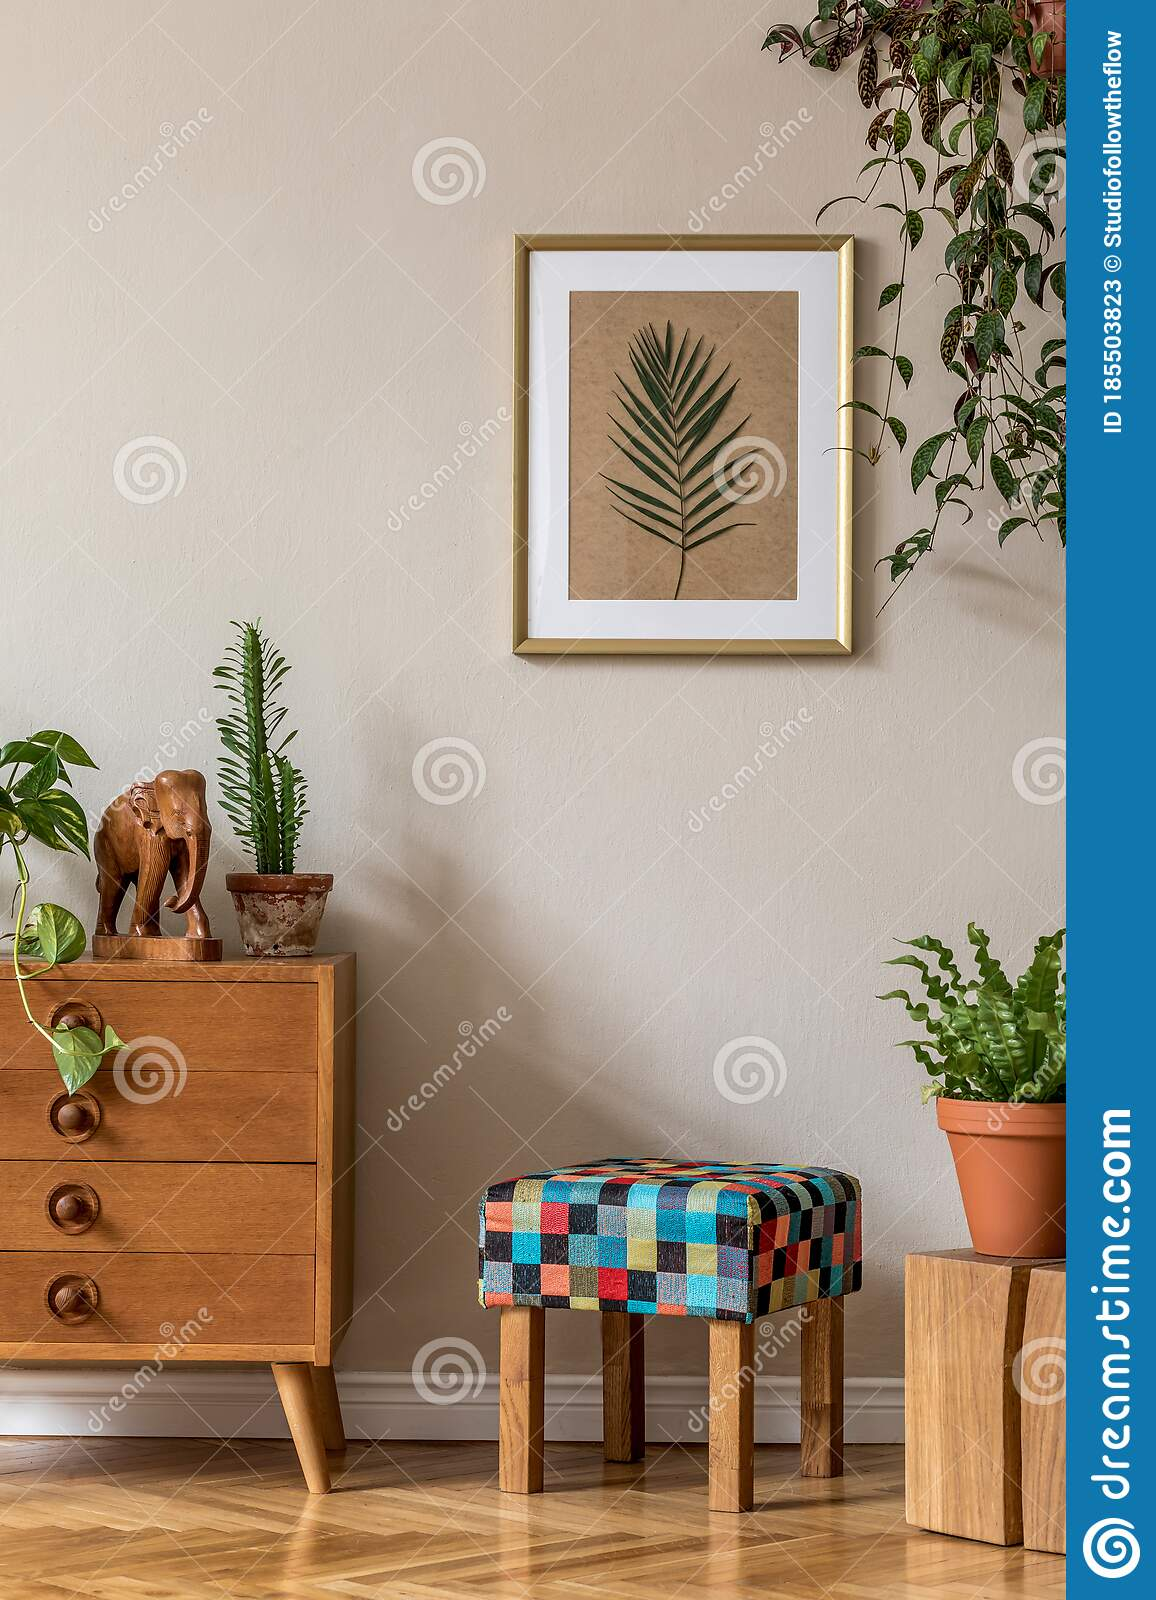 vintage interior design of living room with retro wooden commode stock image image of design leaf 185503823